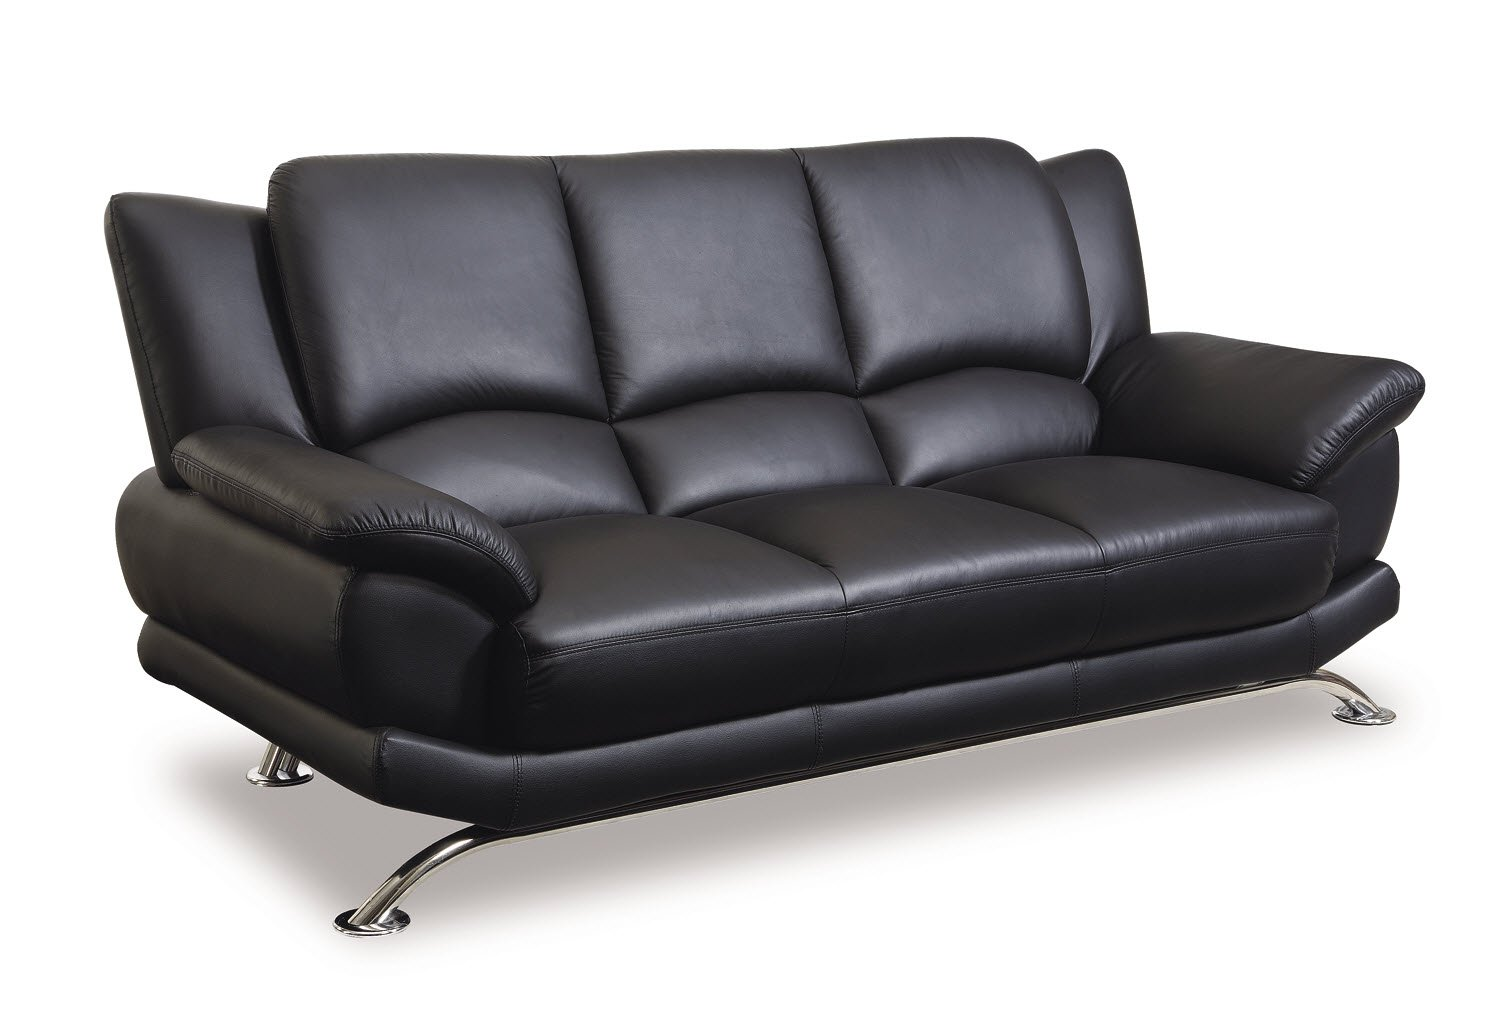 Global Furniture Rogers Collection Bonded Leather Matching Sofa, Black with  Chrome Legs